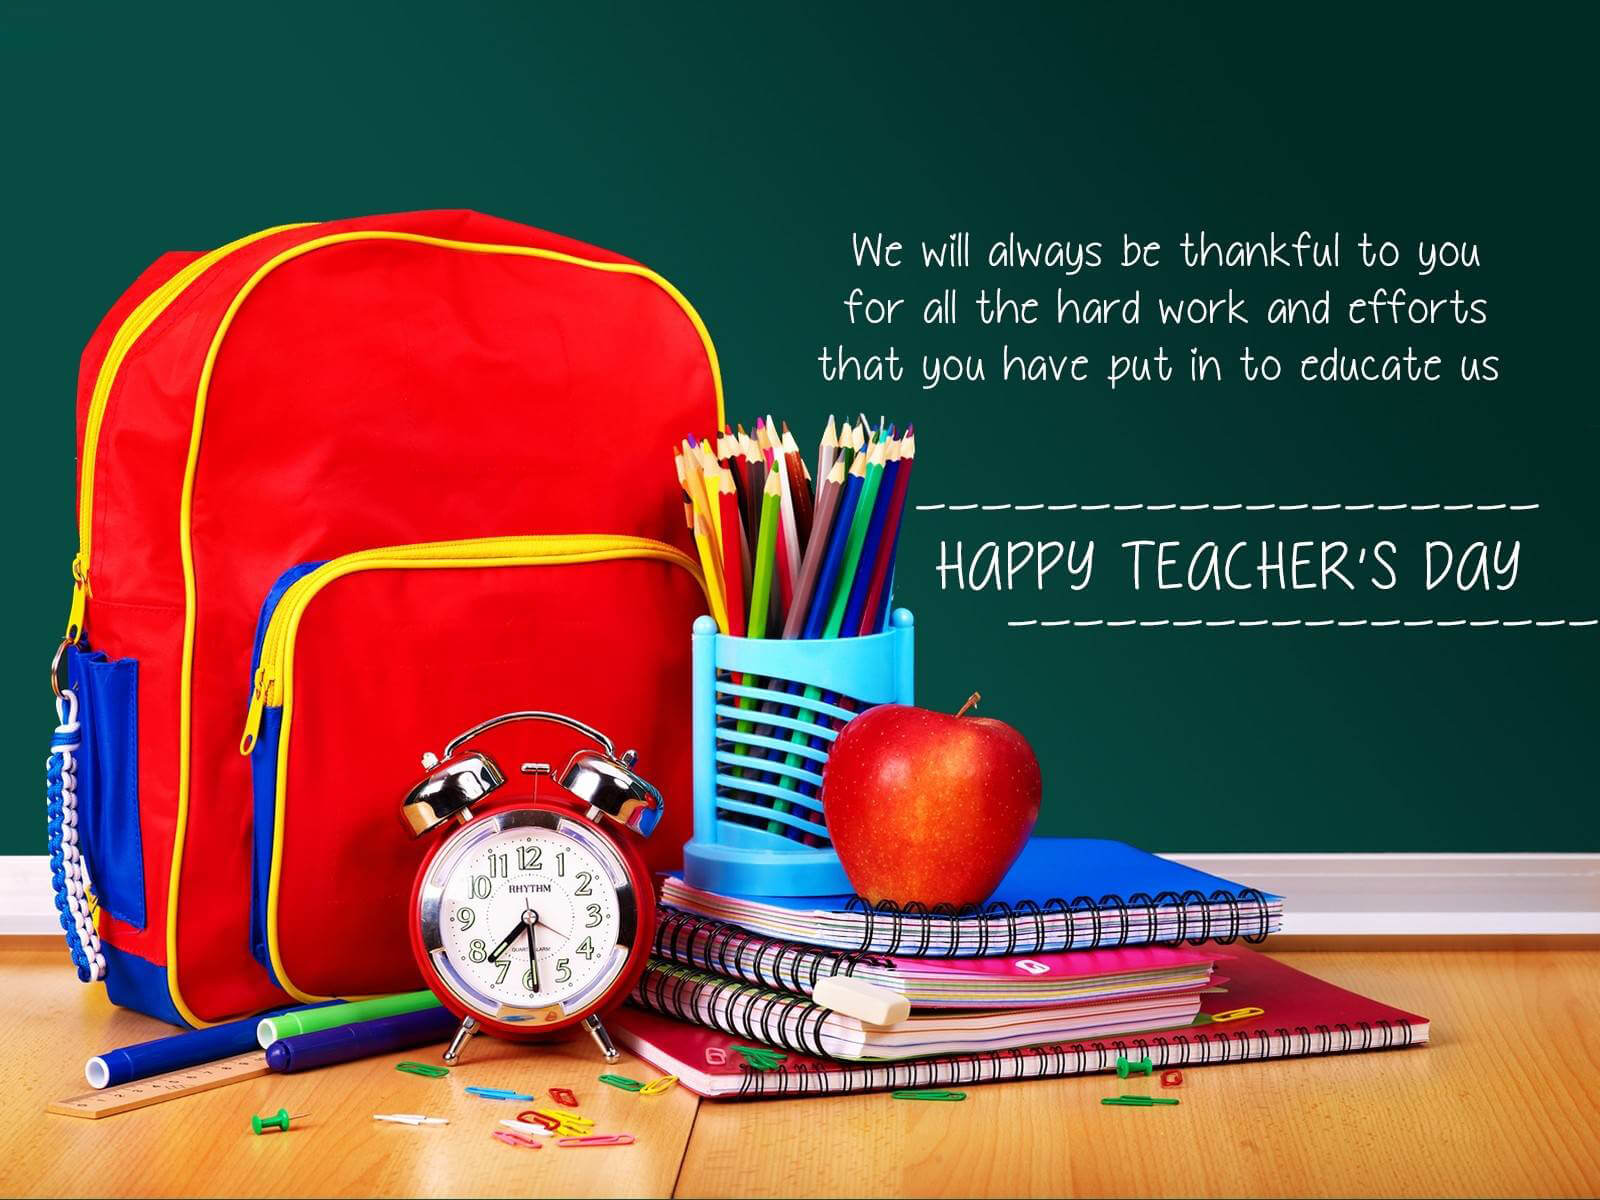 Teachers day hd image wallpaper teachers day quotes wishes hd new wallpaper altavistaventures Image collections